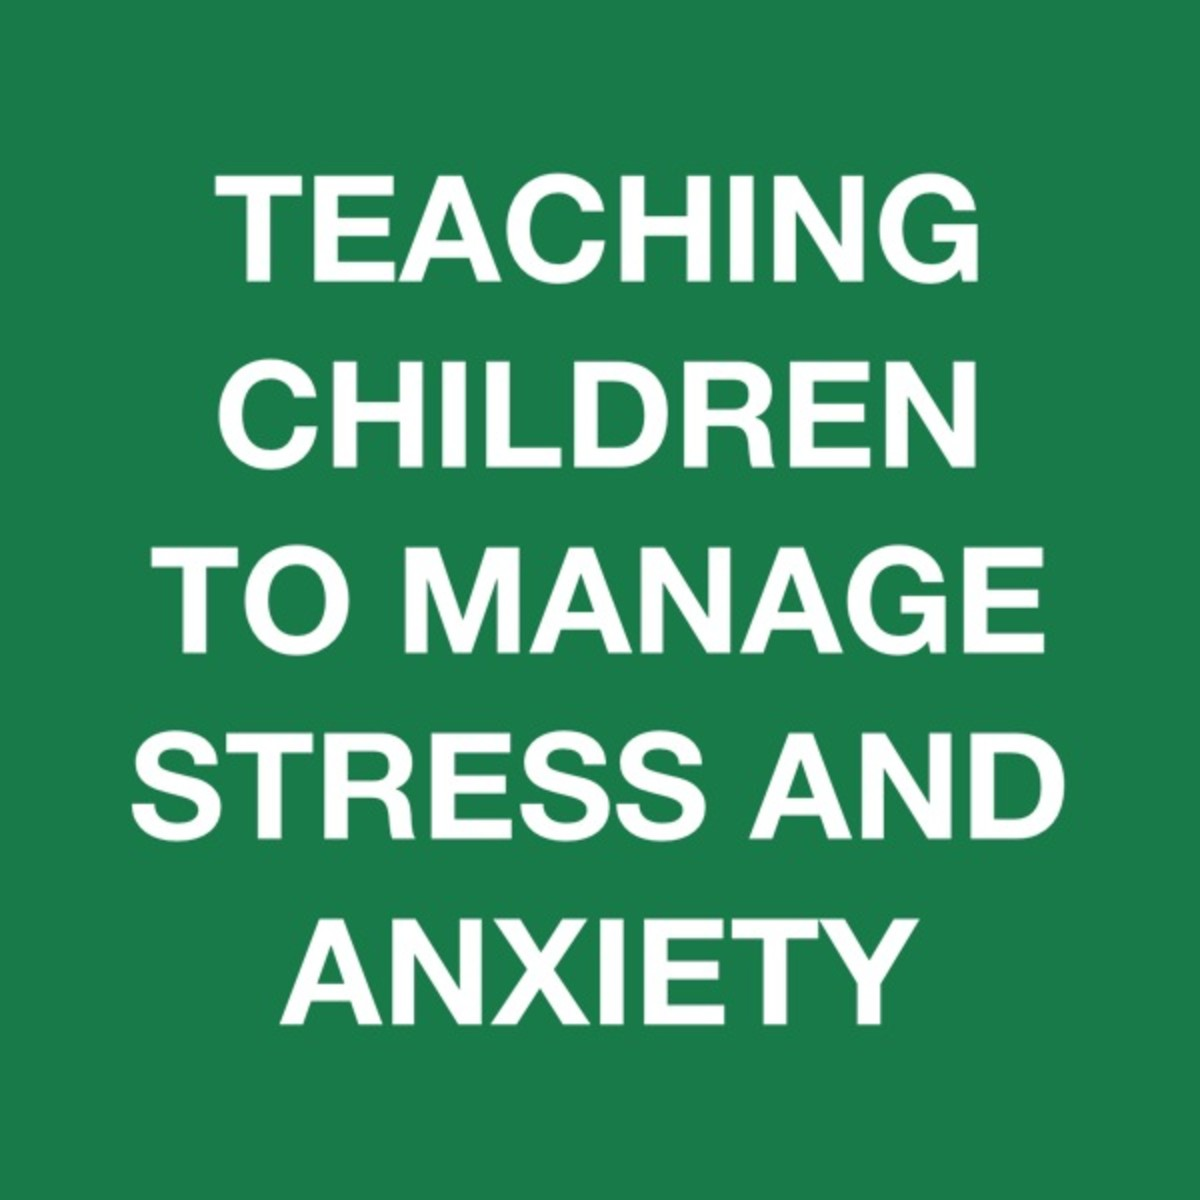 Managing stress is a crucial life skill to teach to our kids.